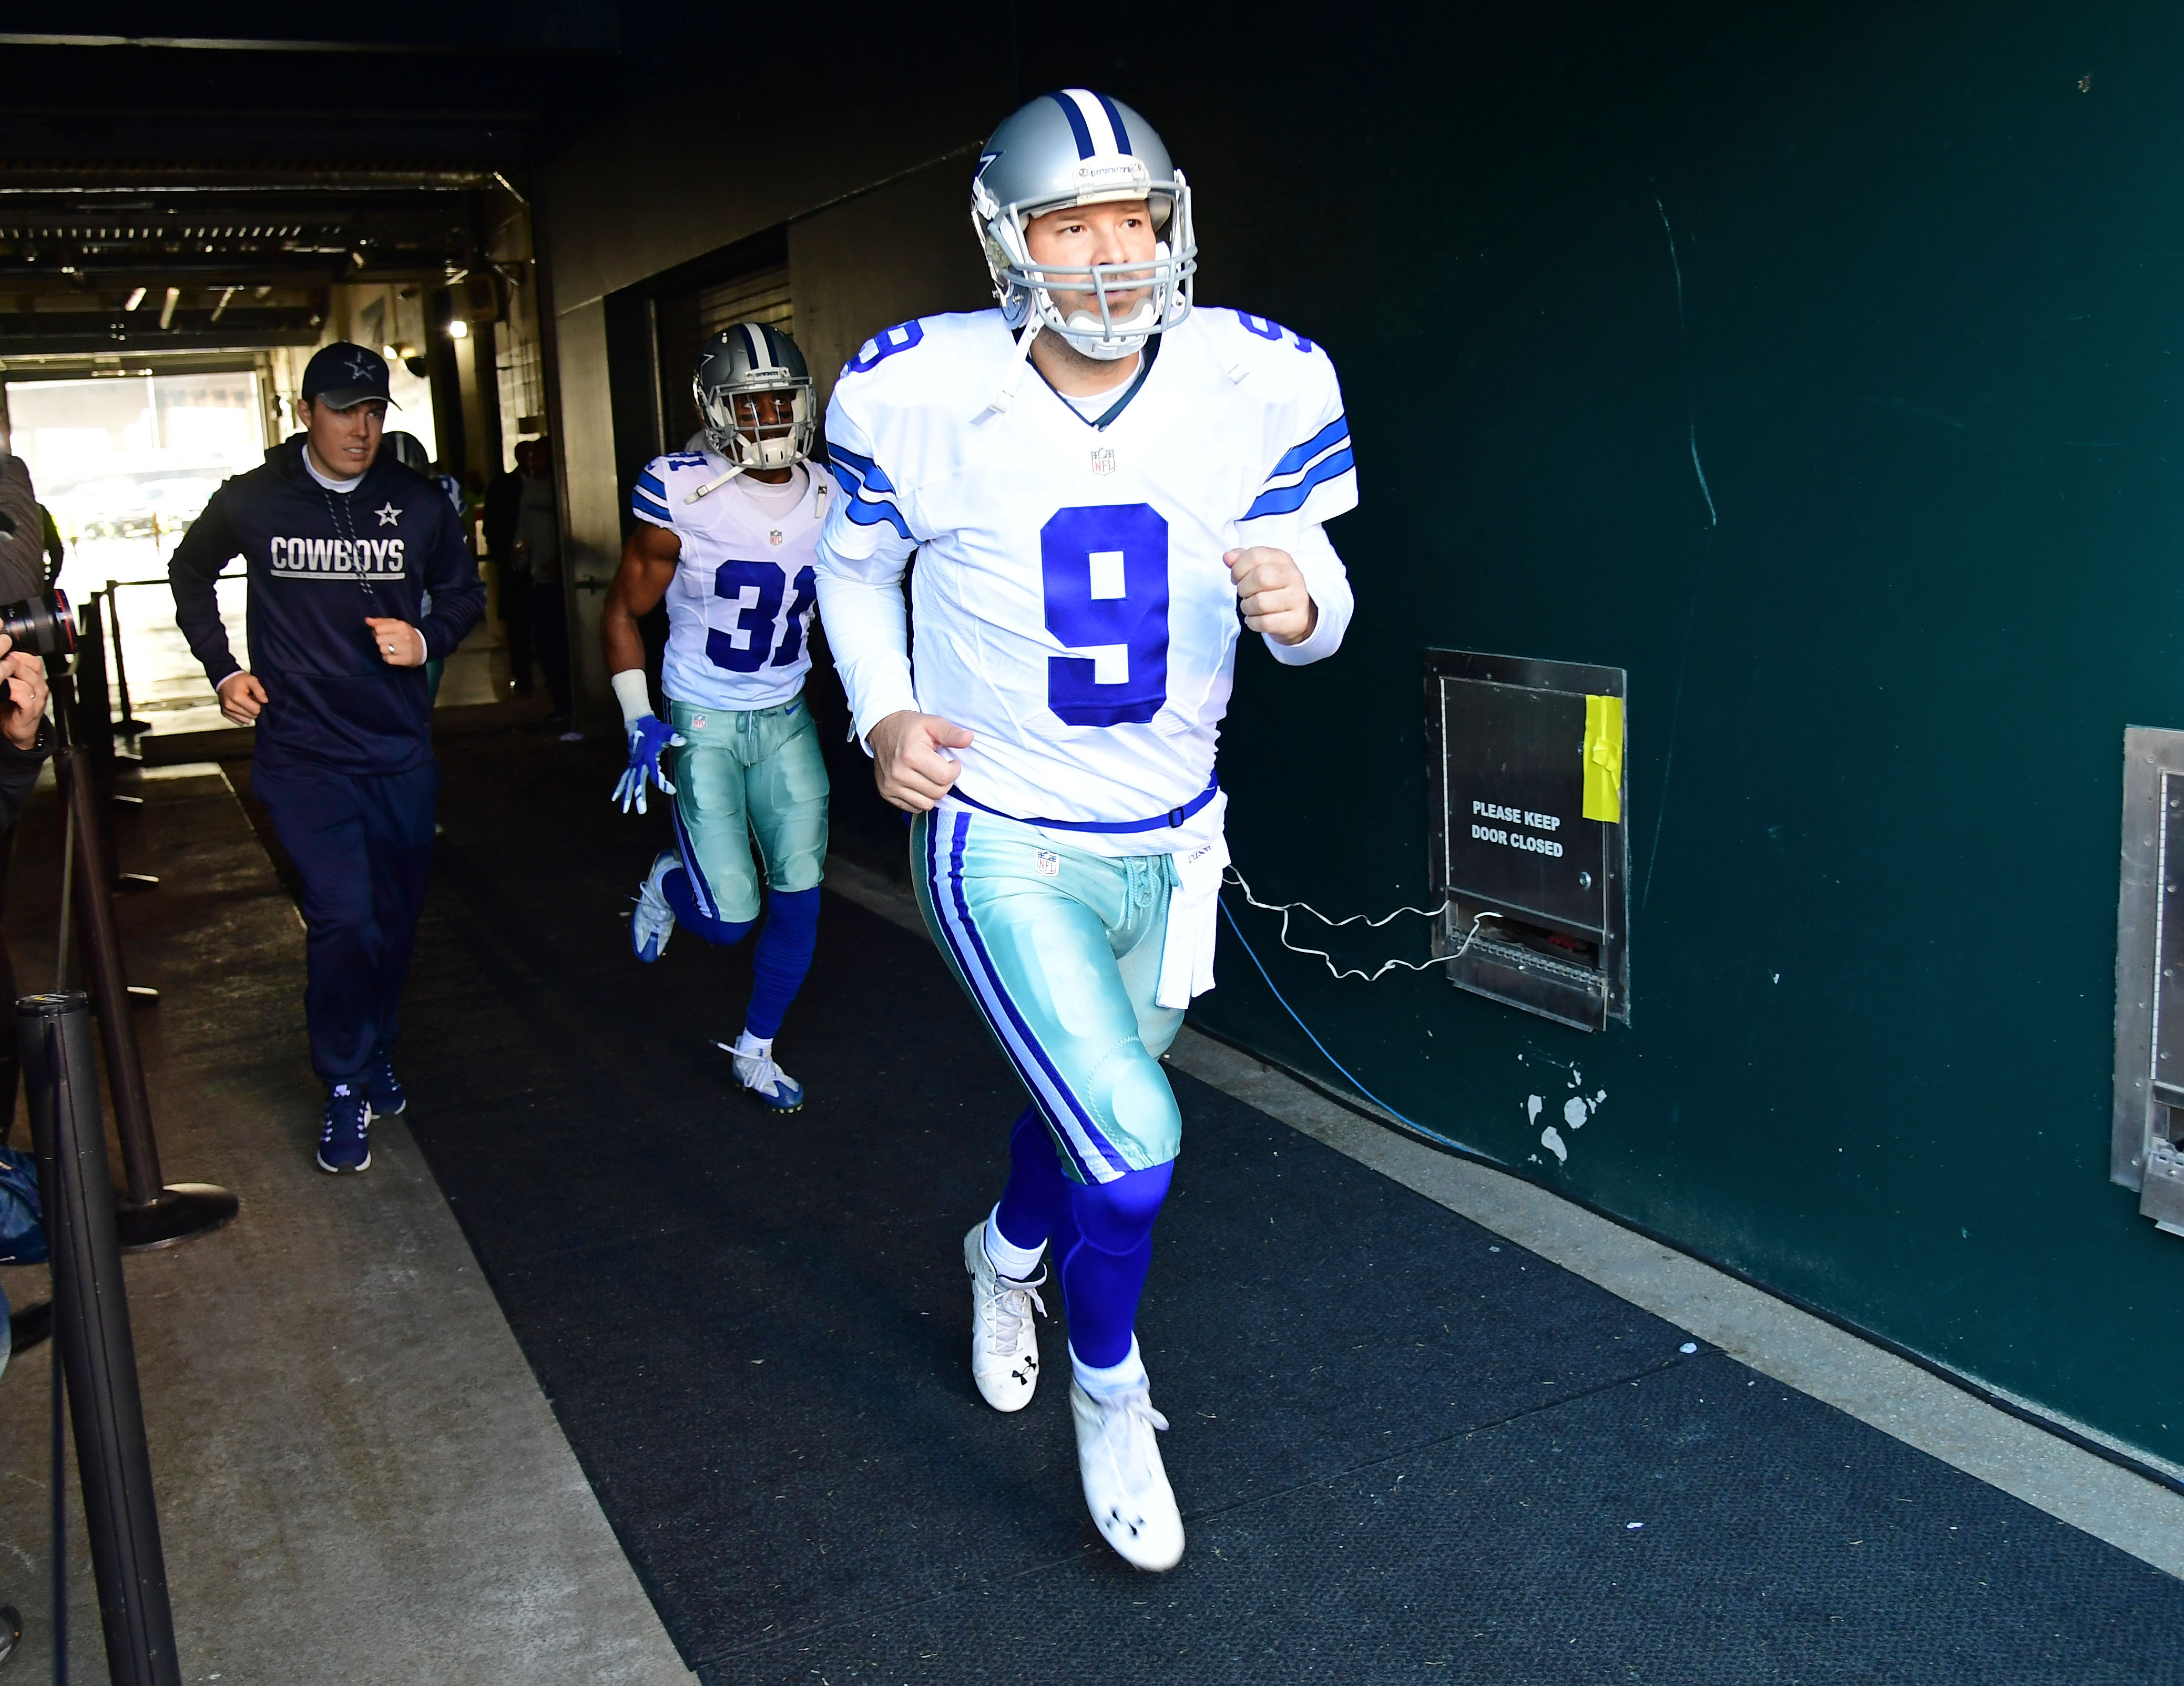 9781371-nfl-dallas-cowboys-at-philadelphia-eagles